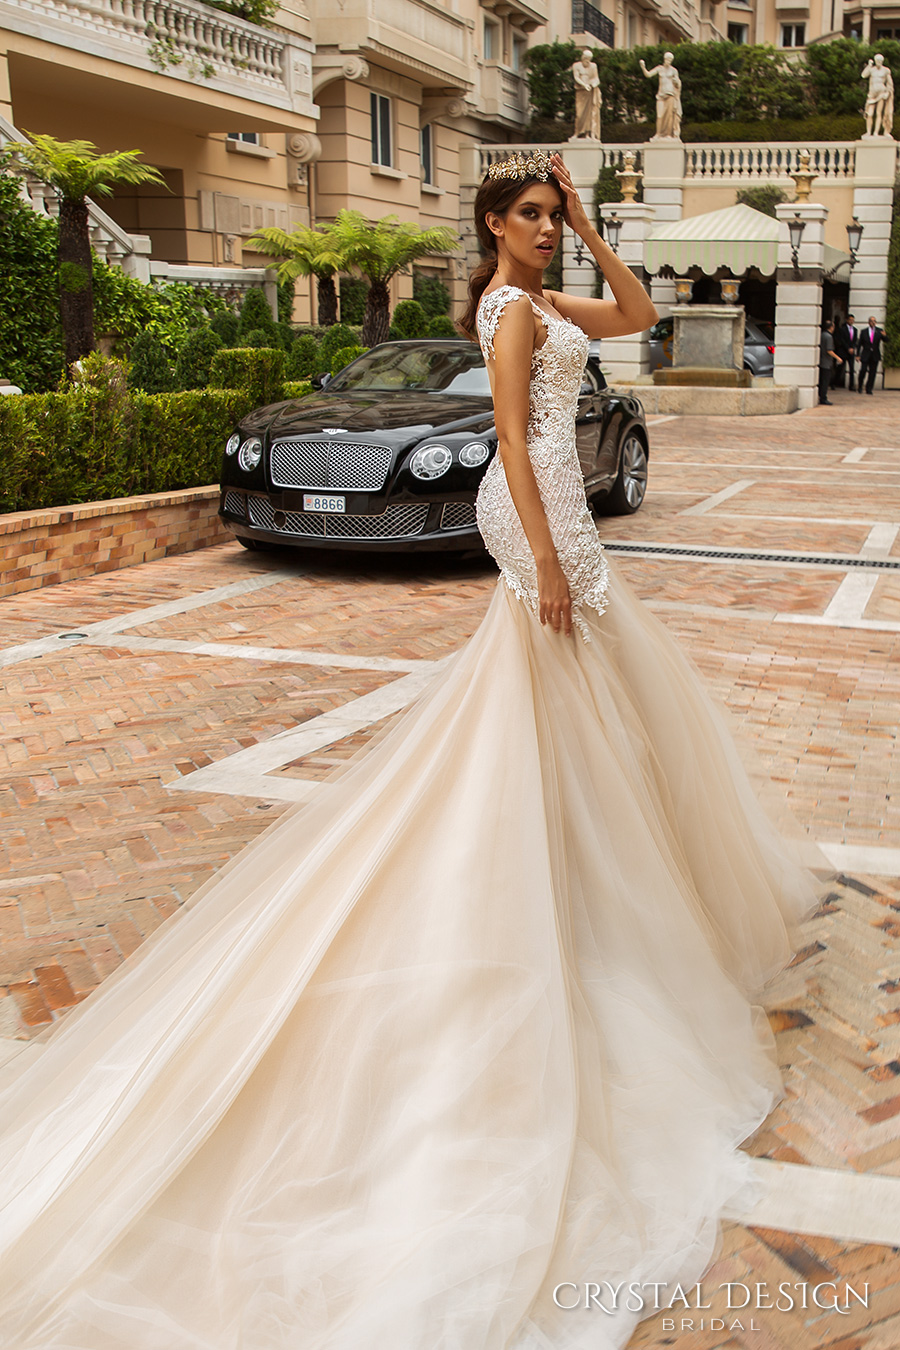 crystal design 2017 bridal sleeveless with strap sweetheart neckline heavily embellished bodice tulle fit and flare mermaid wedding dress low back royal train (solange) sdv